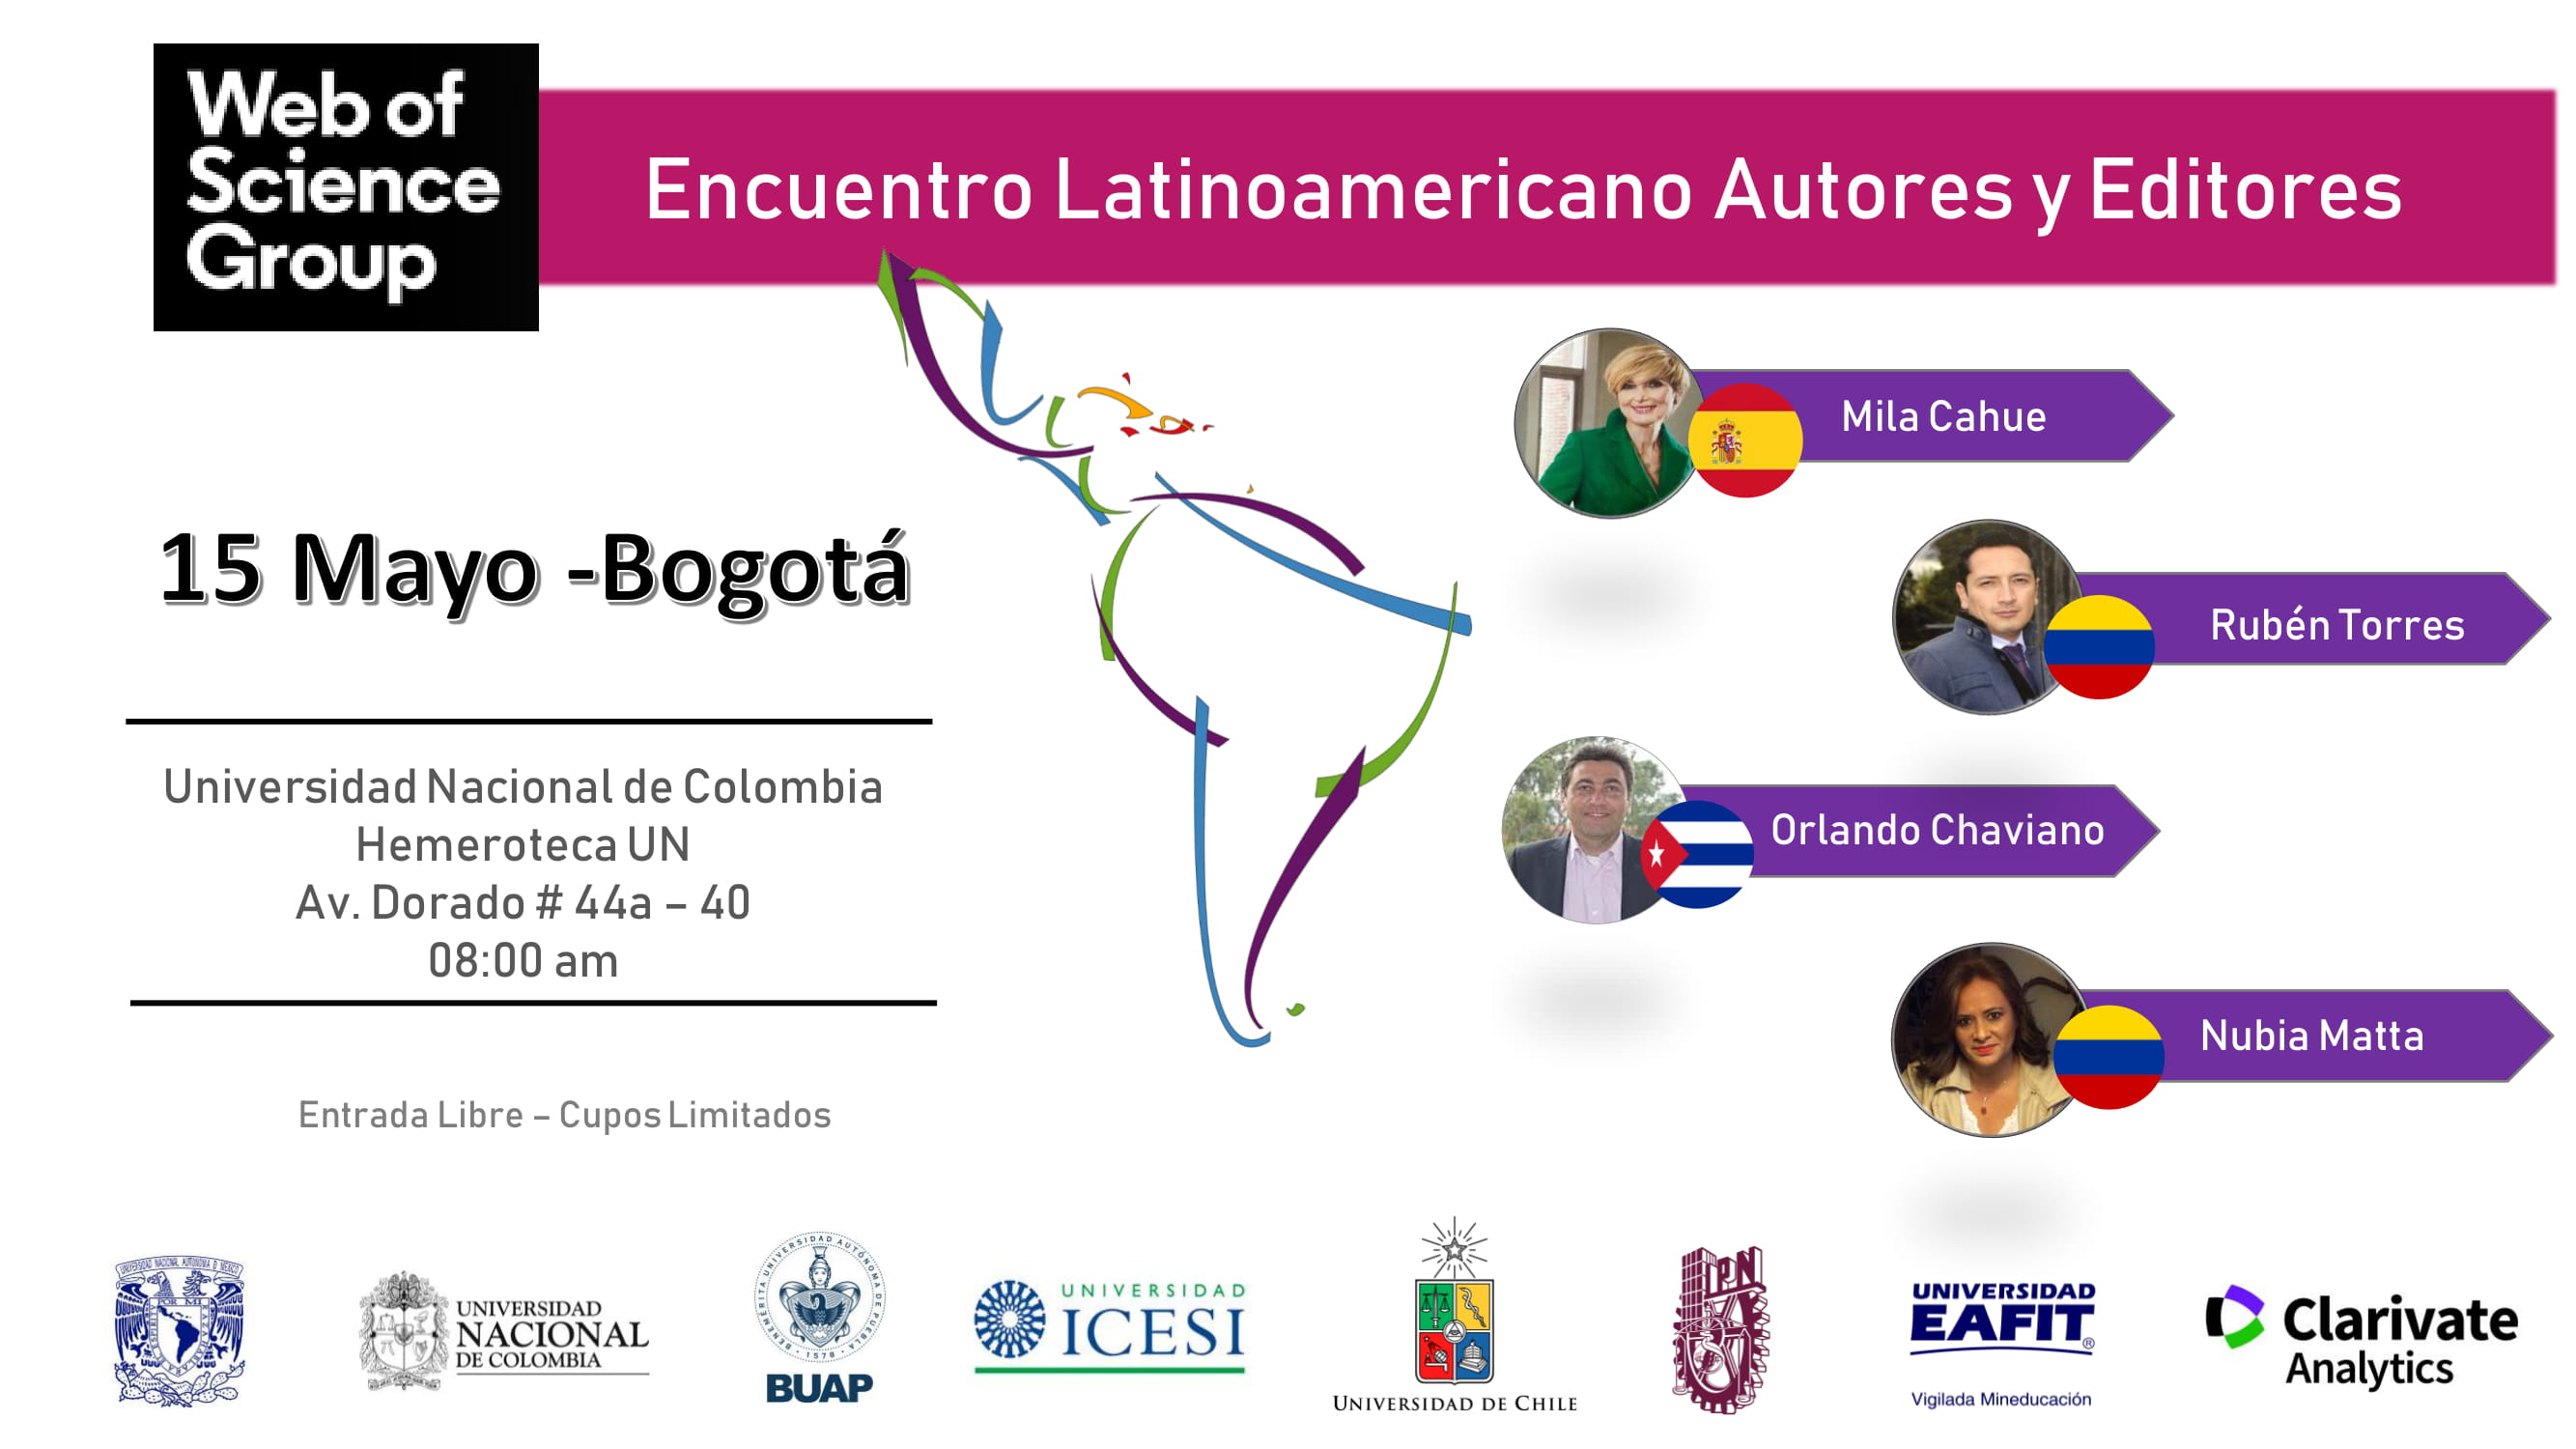 Encuentro Latinoamericano de Autores y Editores (Web of Science Group)